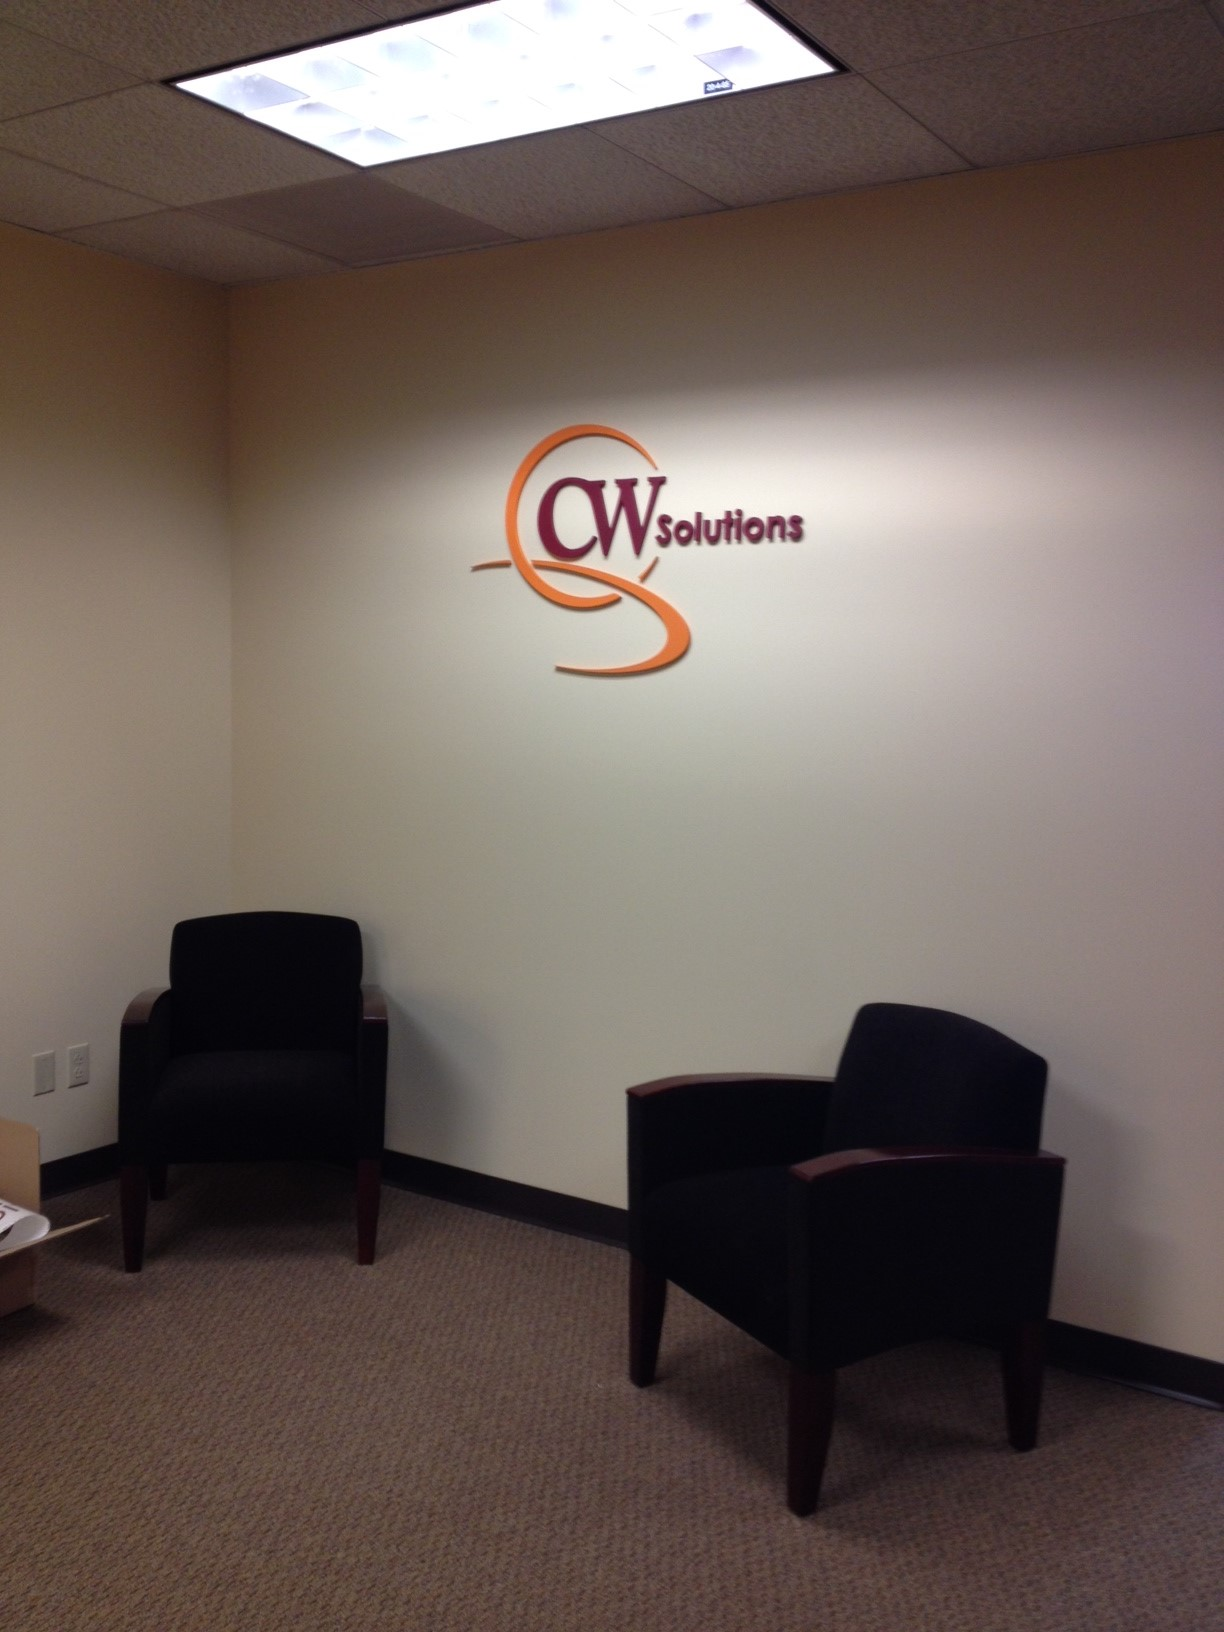 CW solutions logo install 4